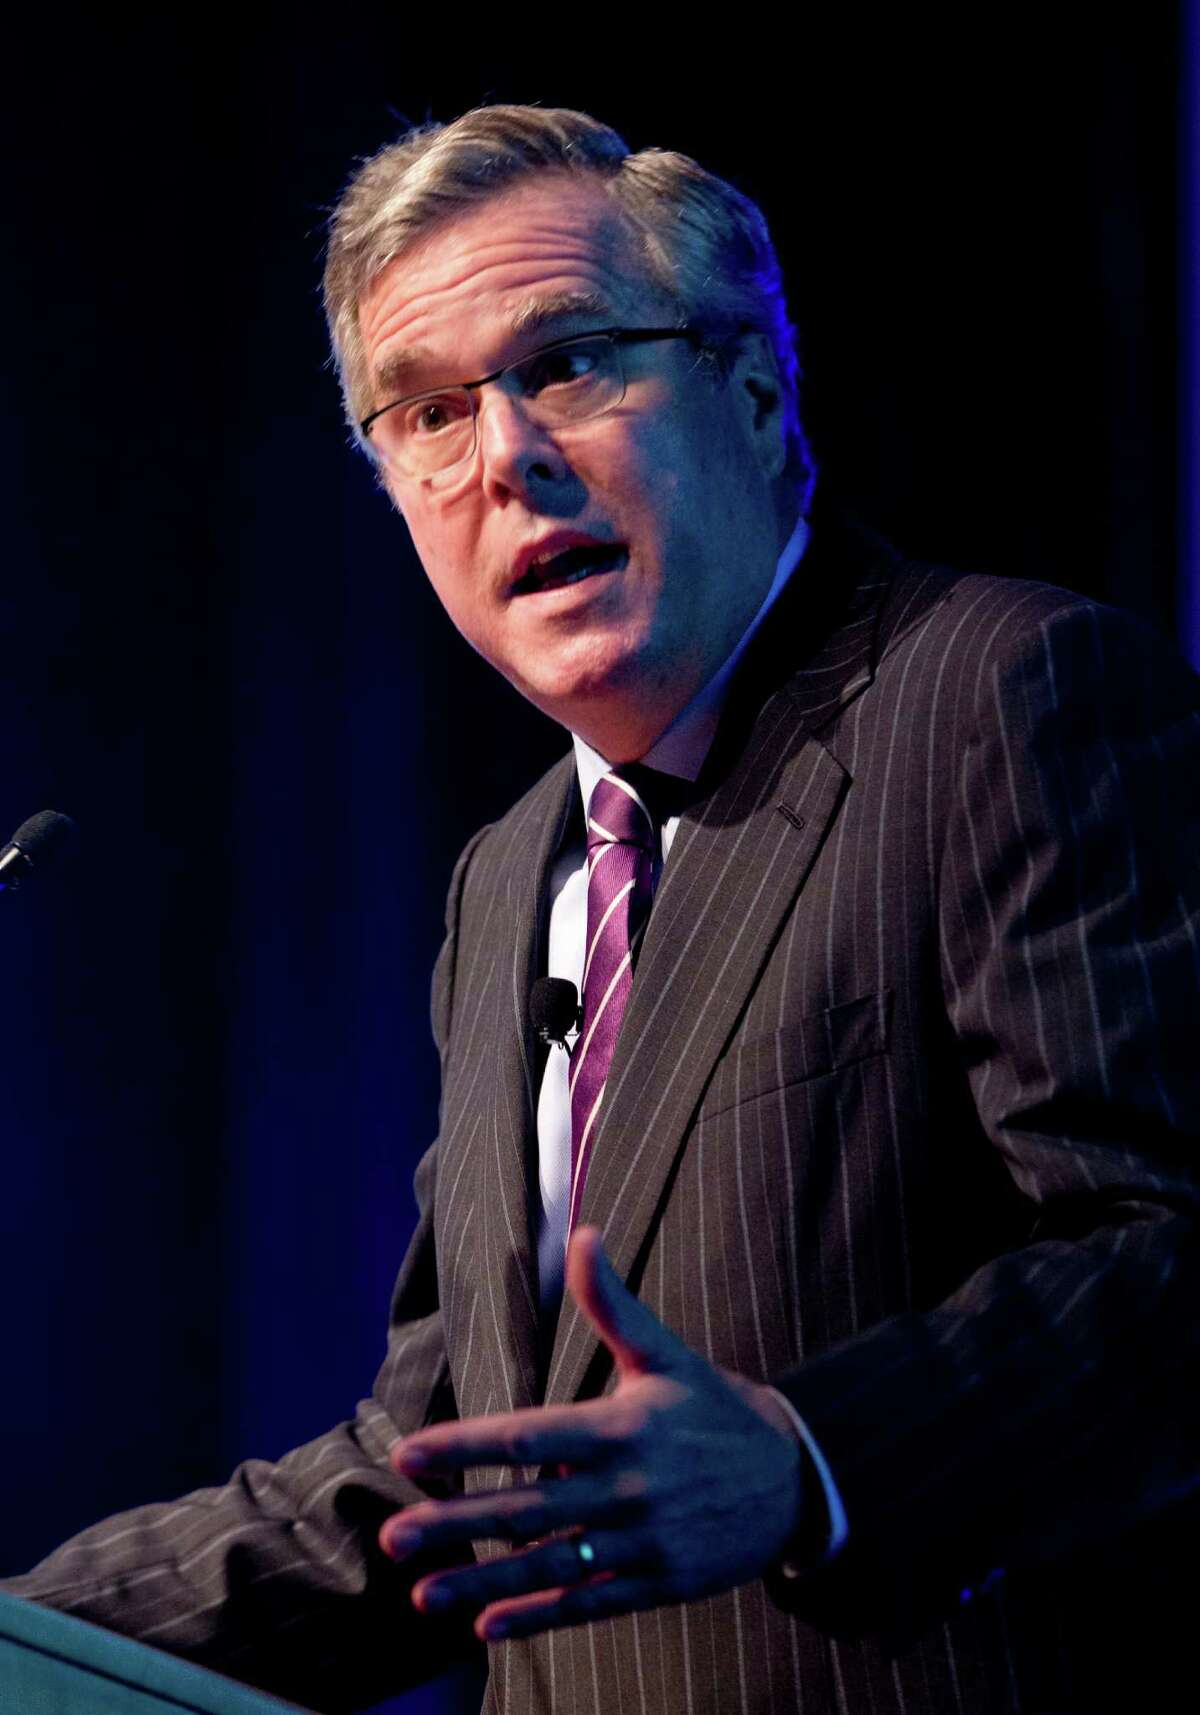 Jeb BushFormer Governor of FloridaOdds: 5/2Source: Ladbrokes